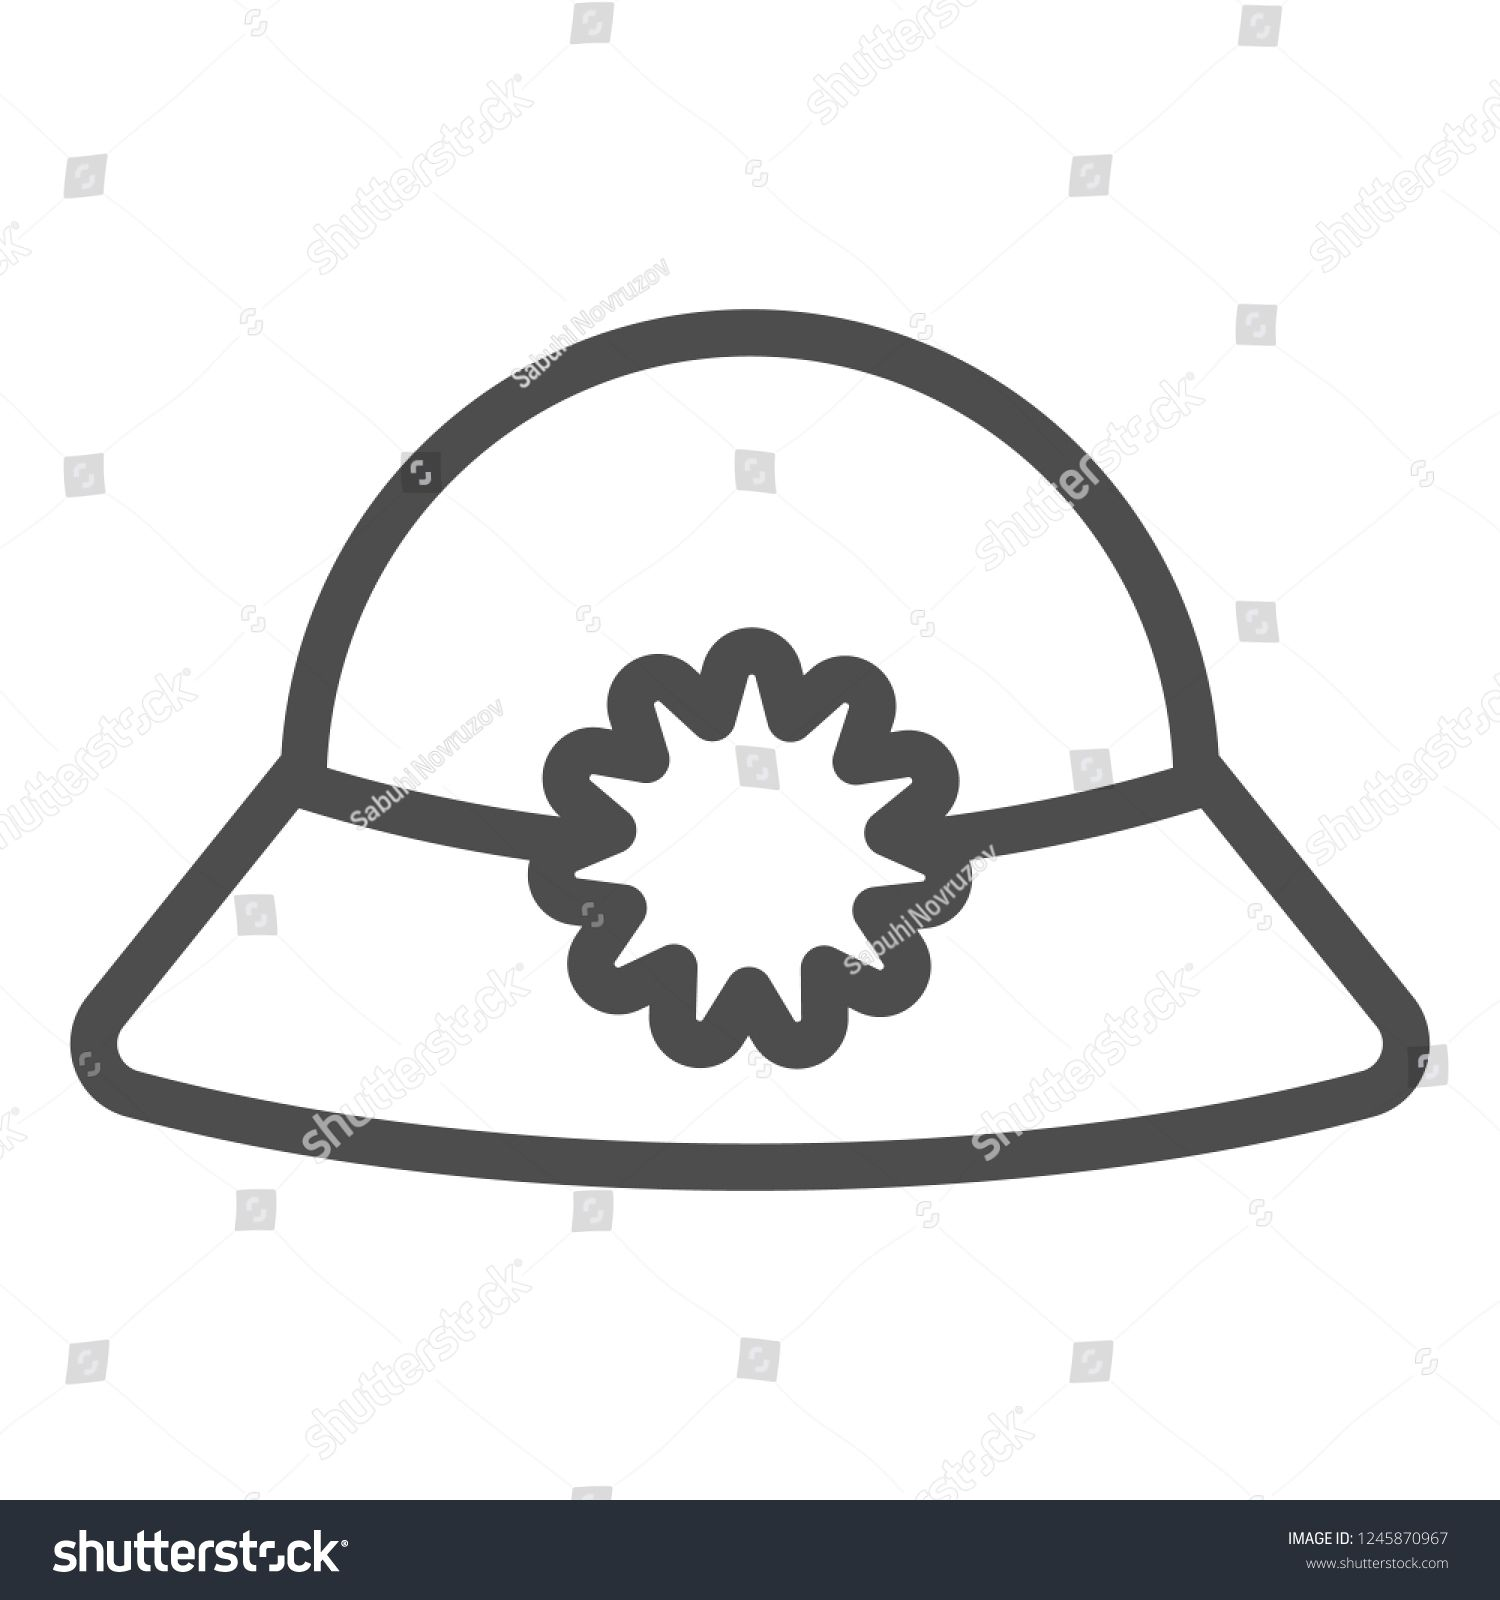 Women S Hat Line Icon Summer Hat Vector Illustration Isolated On White Cap Outline Style Design Designed For Web And Ap Summer Hats Hats For Women Line Icon